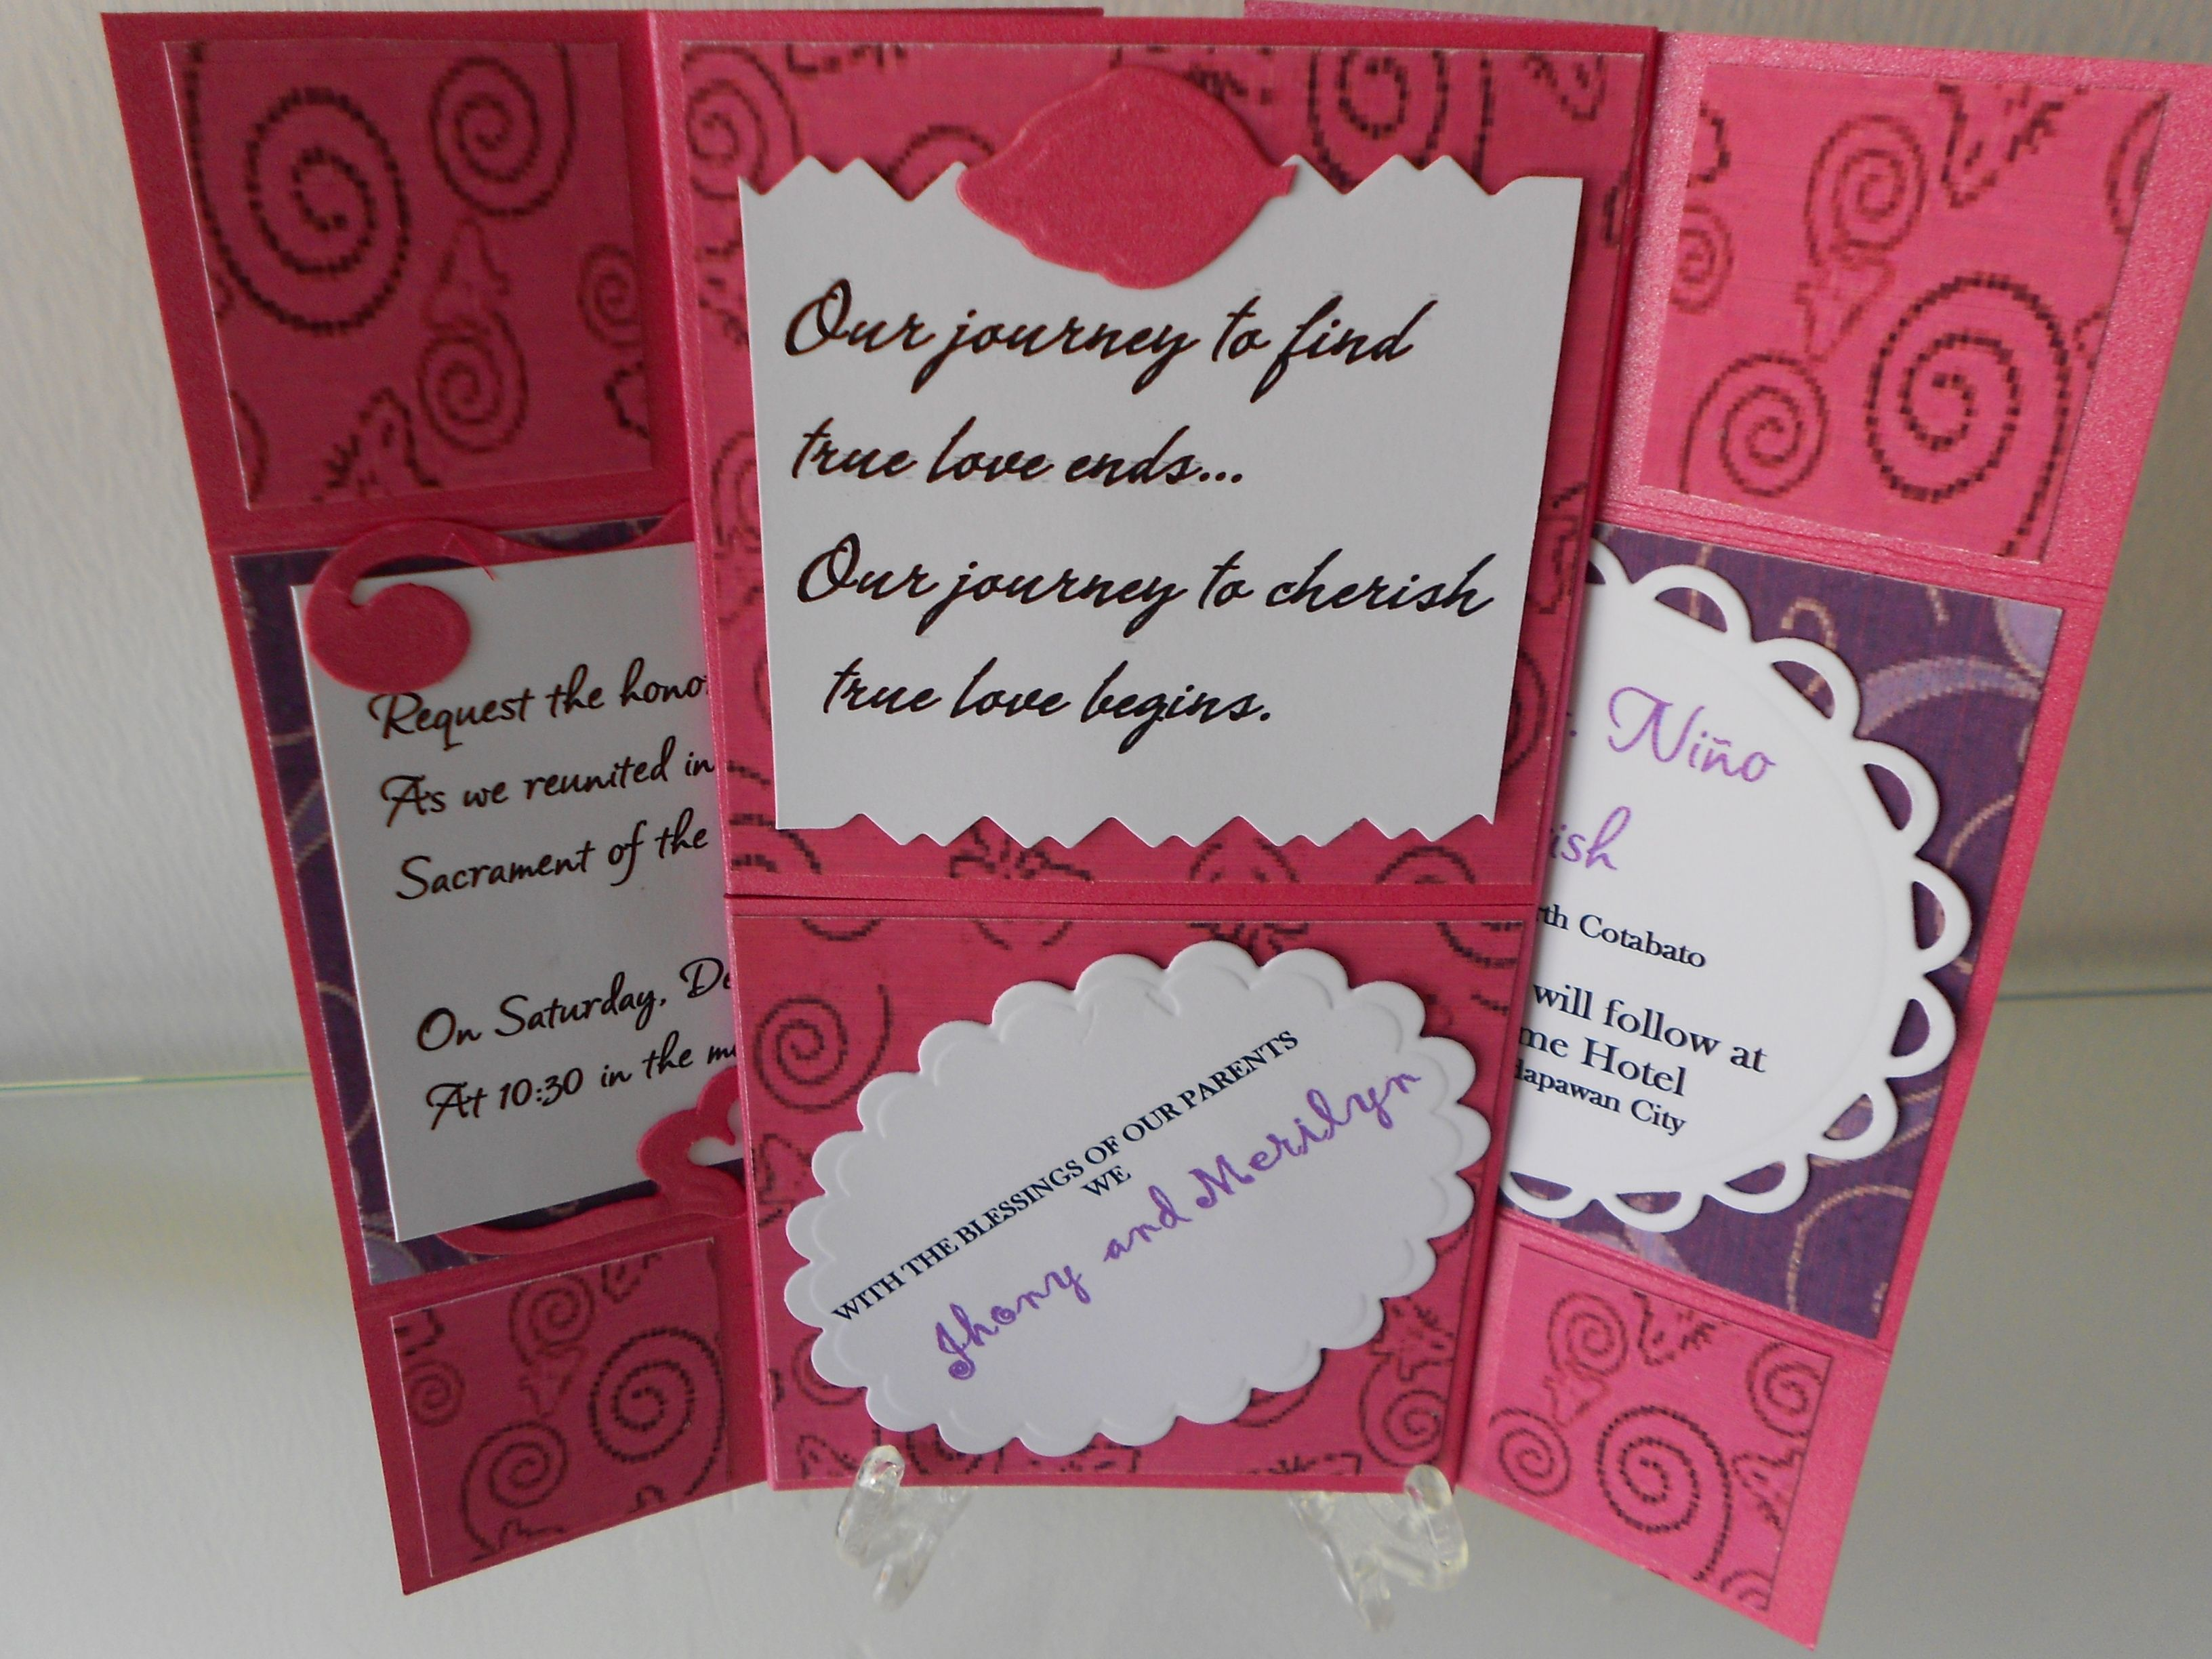 2nd Marriage Wedding Invitations: Second Page Of Johny And Merilyn's Wedding Invitation